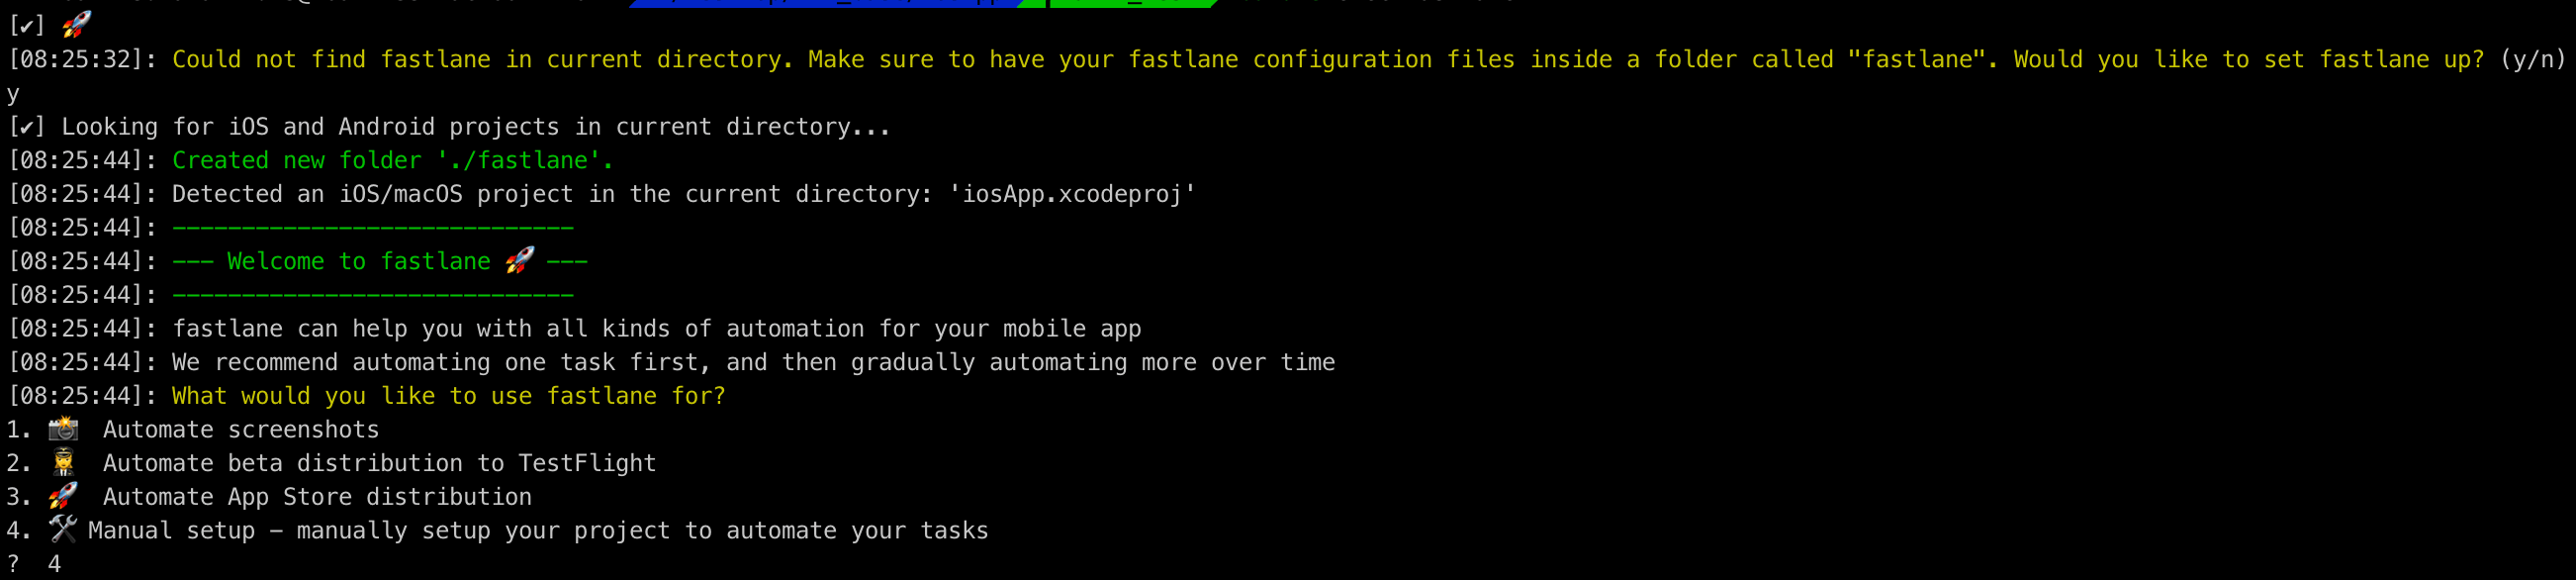 fastlane setup screenshot